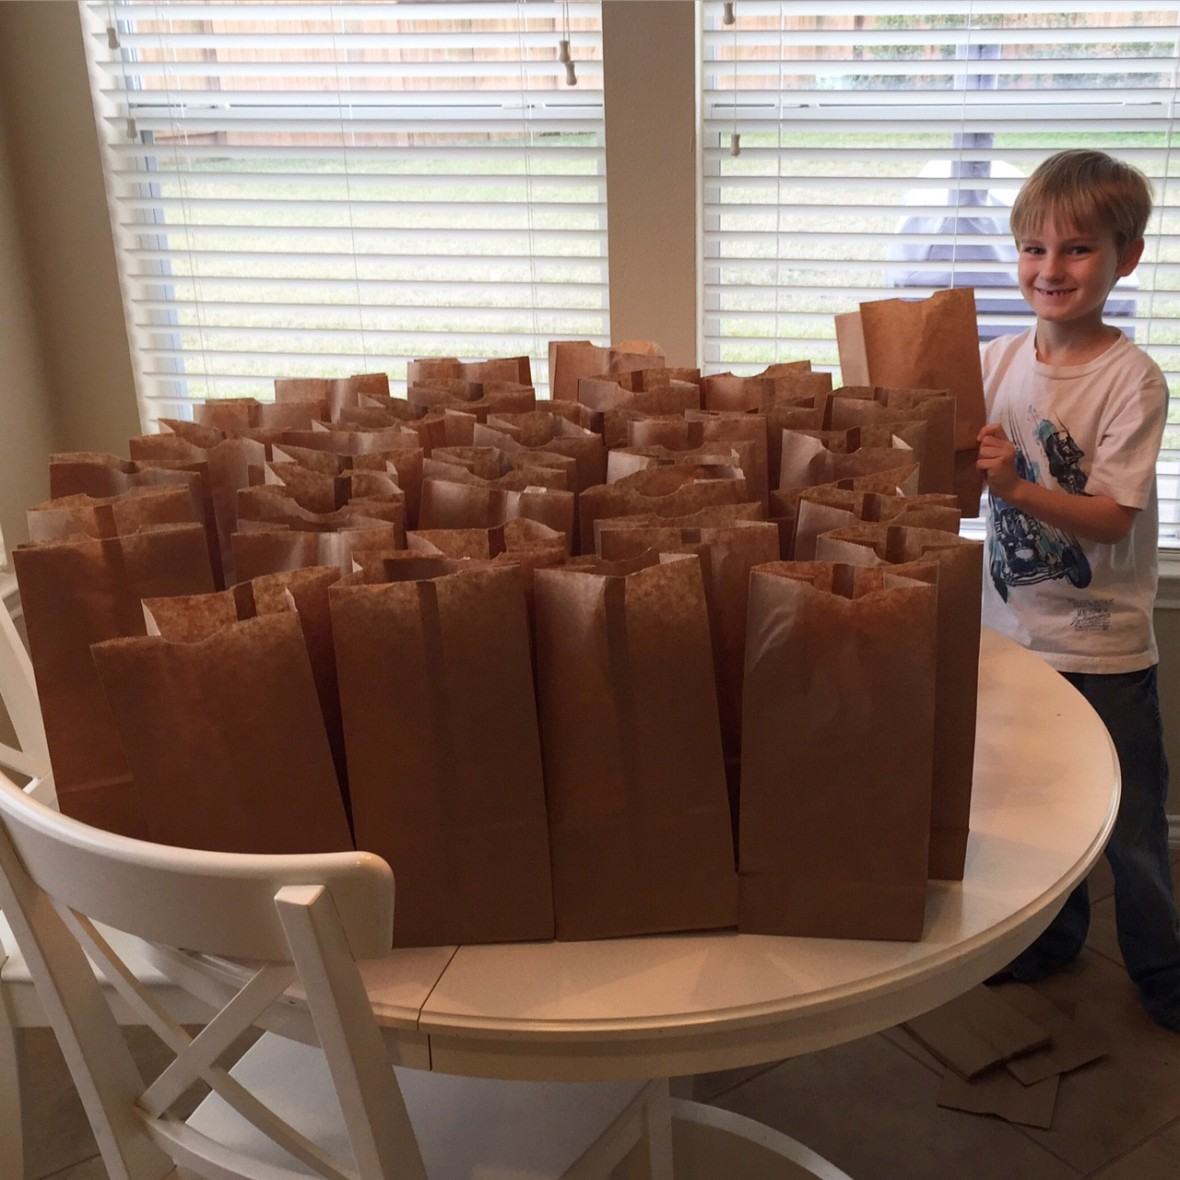 How My Son Wanted to Spend the $120 He Saved This Year.